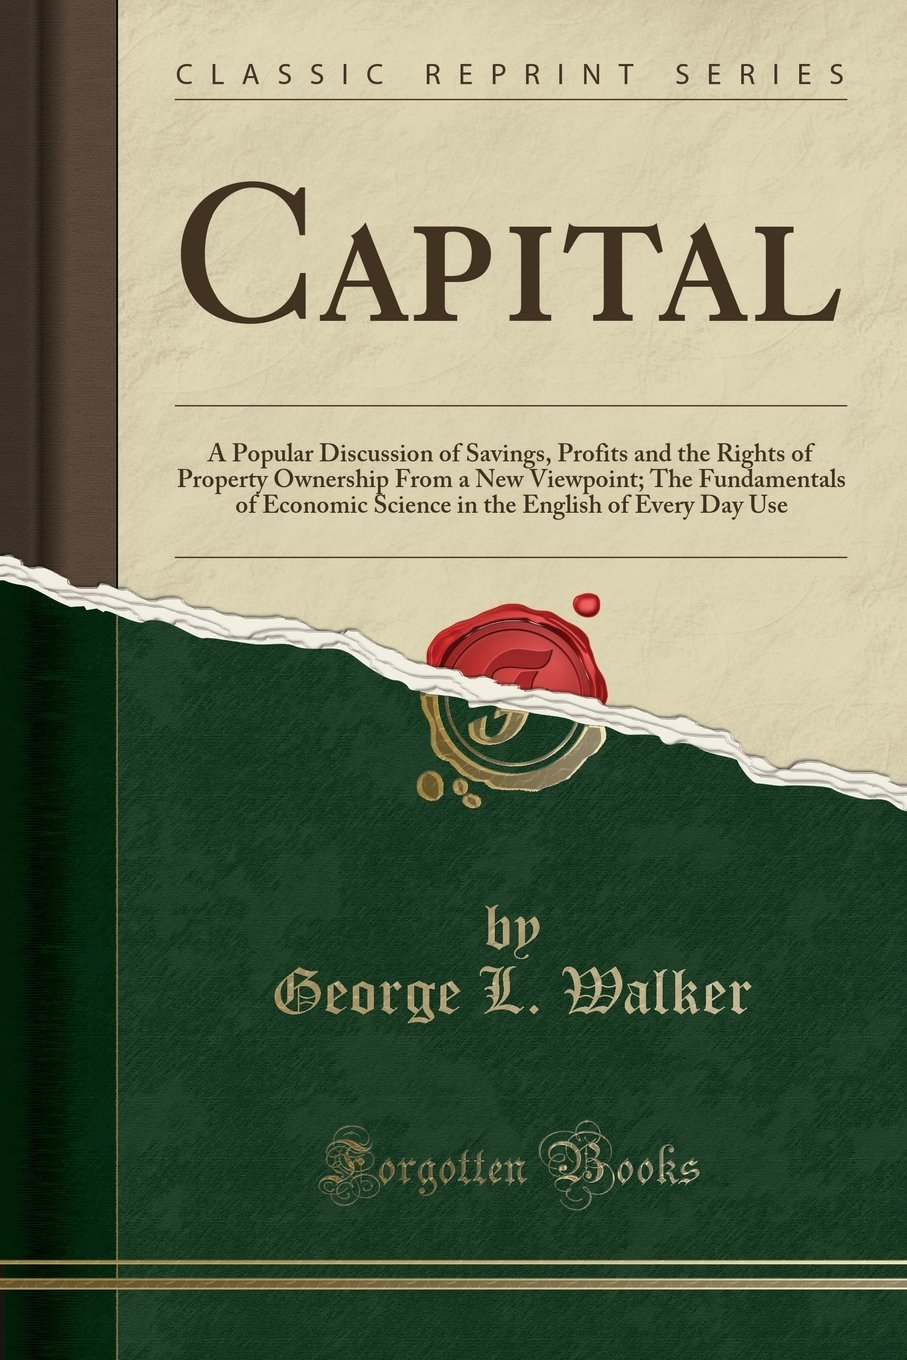 Download Capital: A Popular Discussion of Savings, Profits and the Rights of Property Ownership From a New Viewpoint; The Fundamentals of Economic Science in the English of Every Day Use (Classic Reprint) pdf